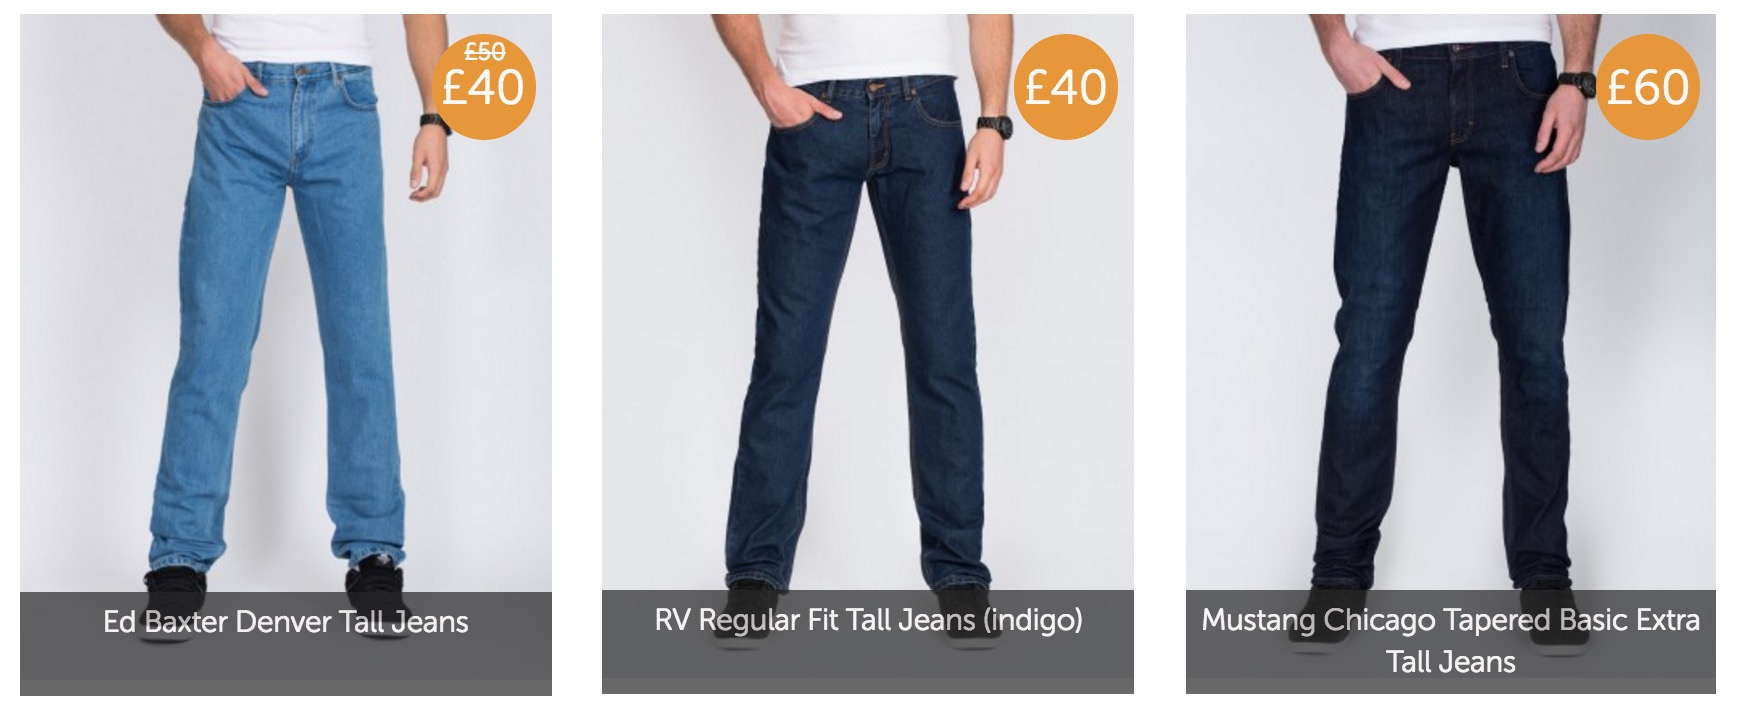 2 tall jeans 2